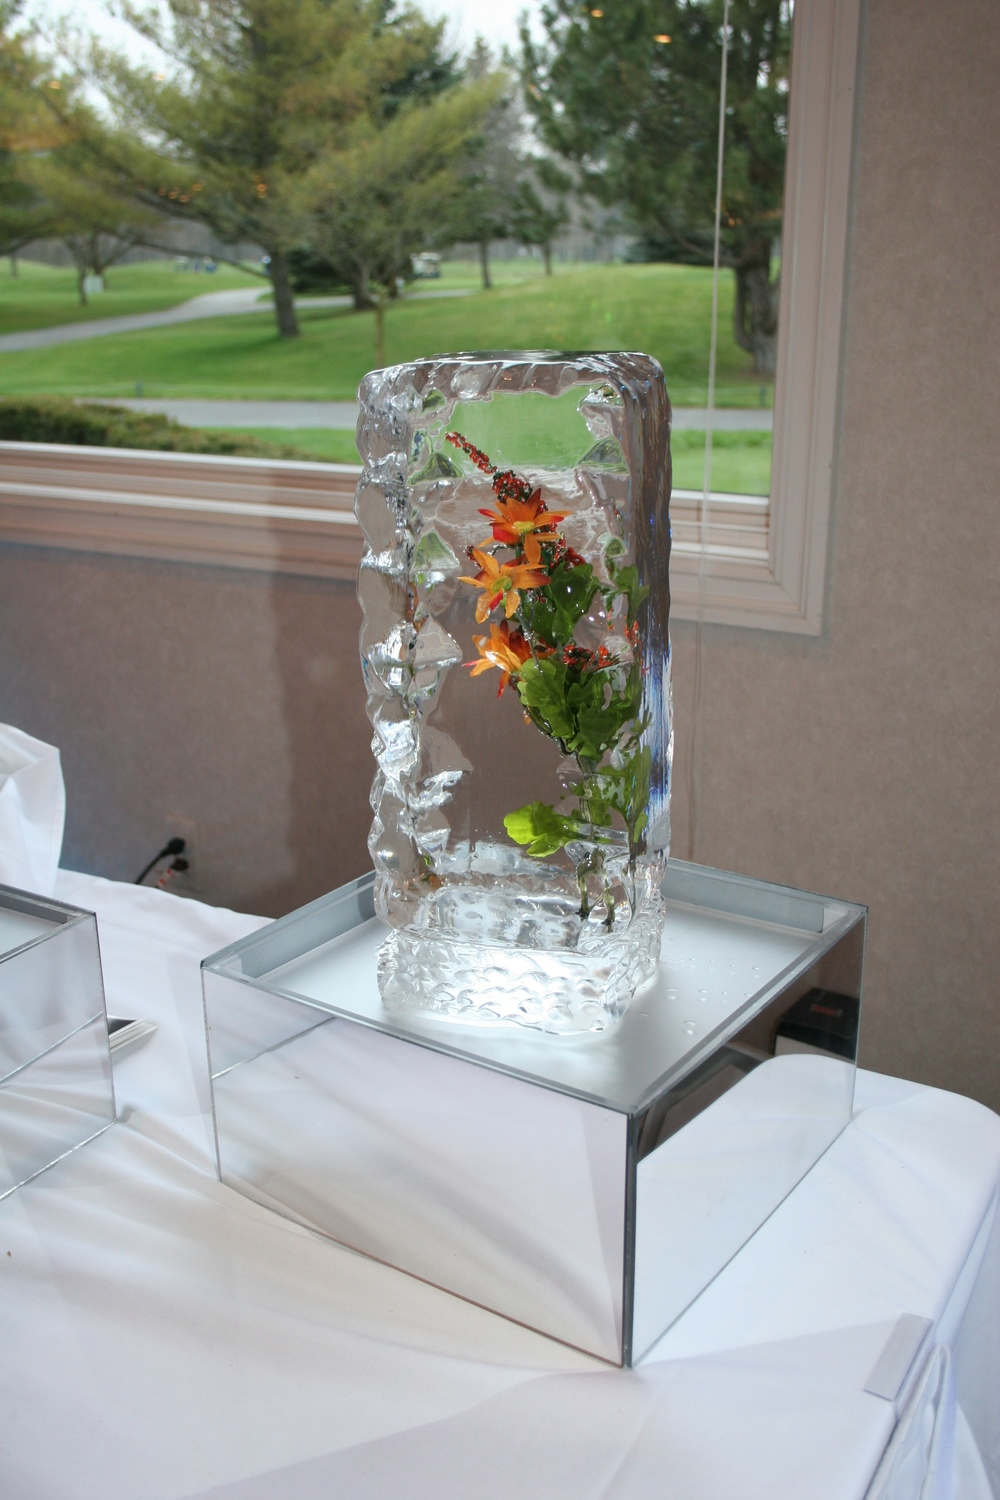 Tabletop_Ice Sculpture_Flower_Column.jpg